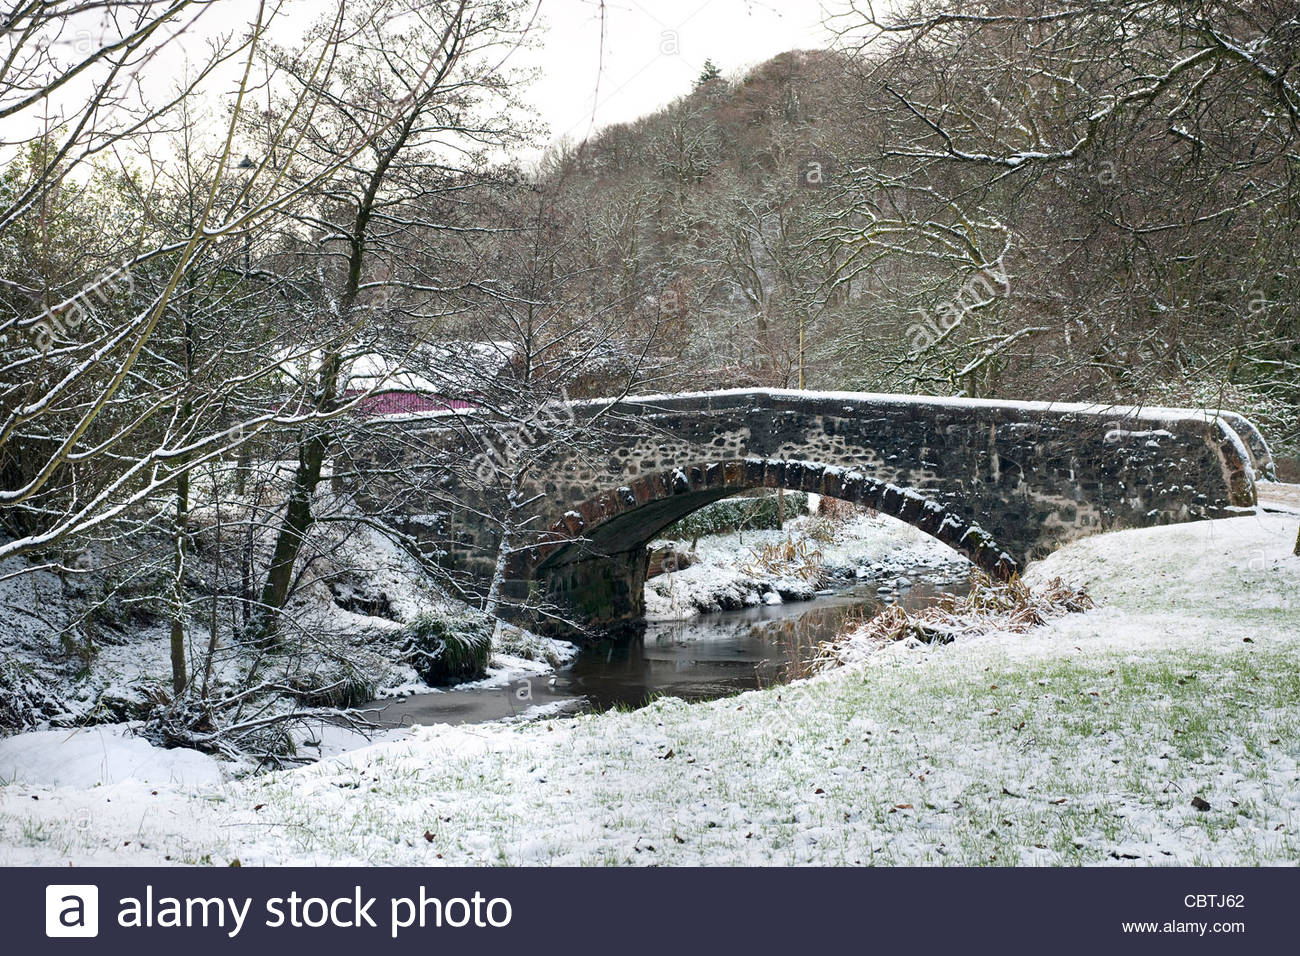 Old stone hump-backed bridge over the Gregg Burn in the village of Barr, Ayrshire, Scotland - Stock Image